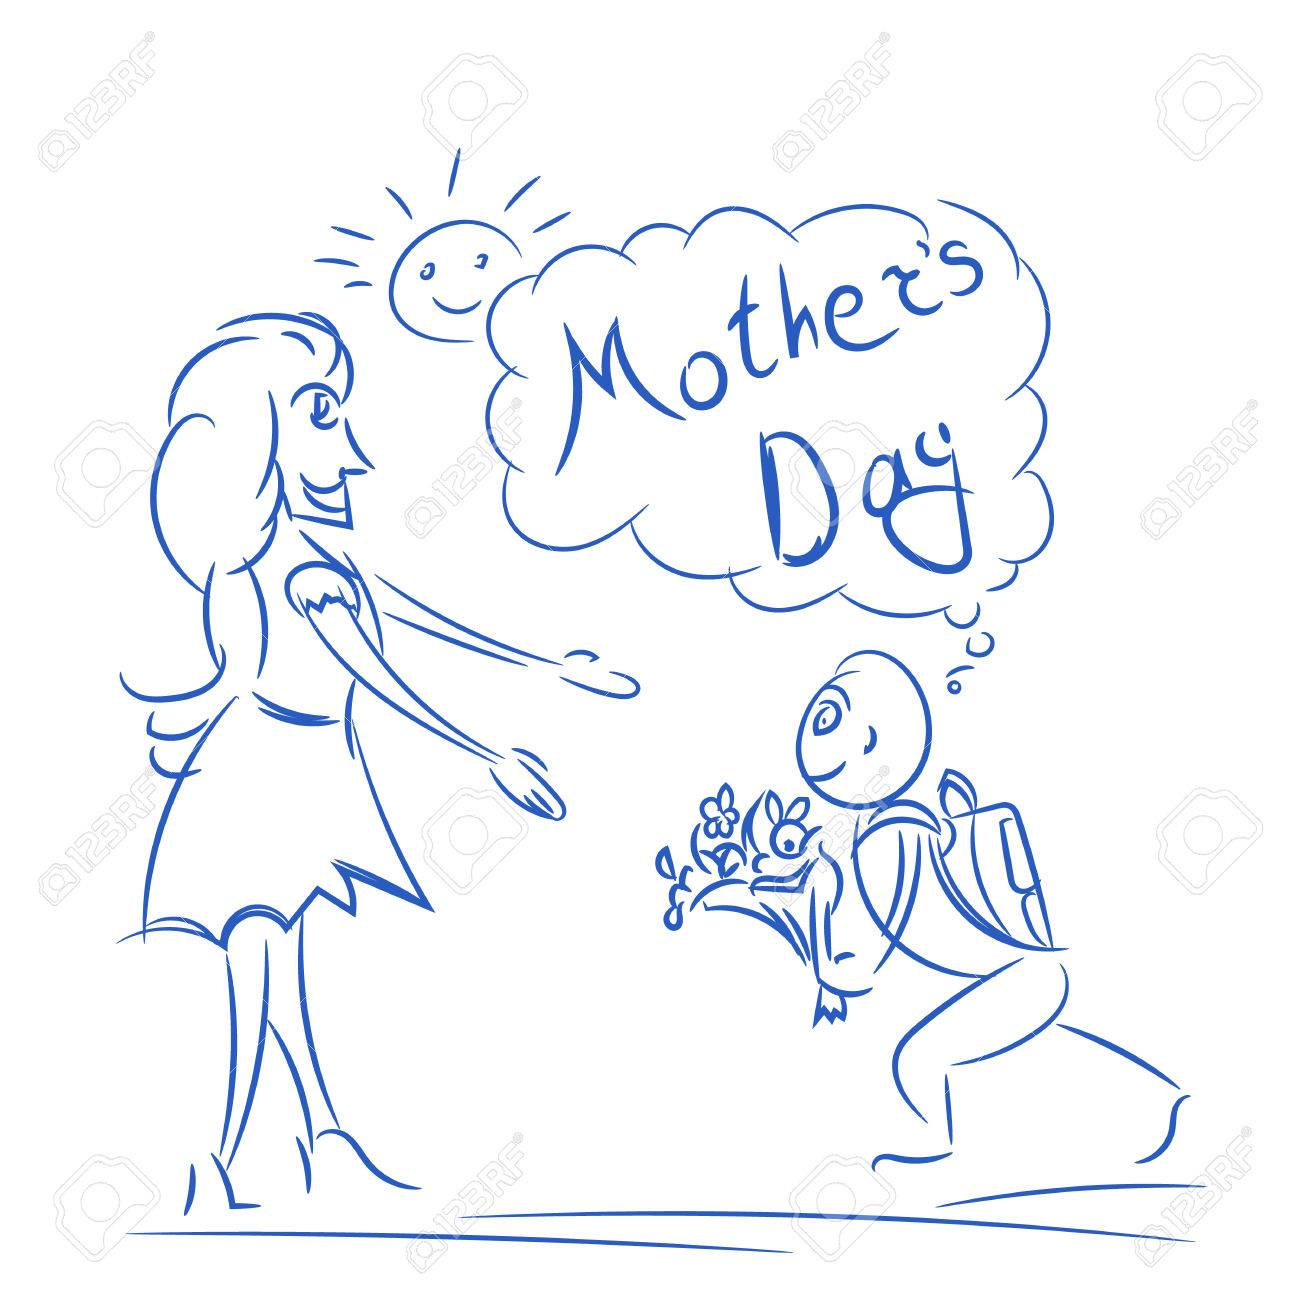 Mothers day in sketch vector doodle illustration with mom and son for mothers day